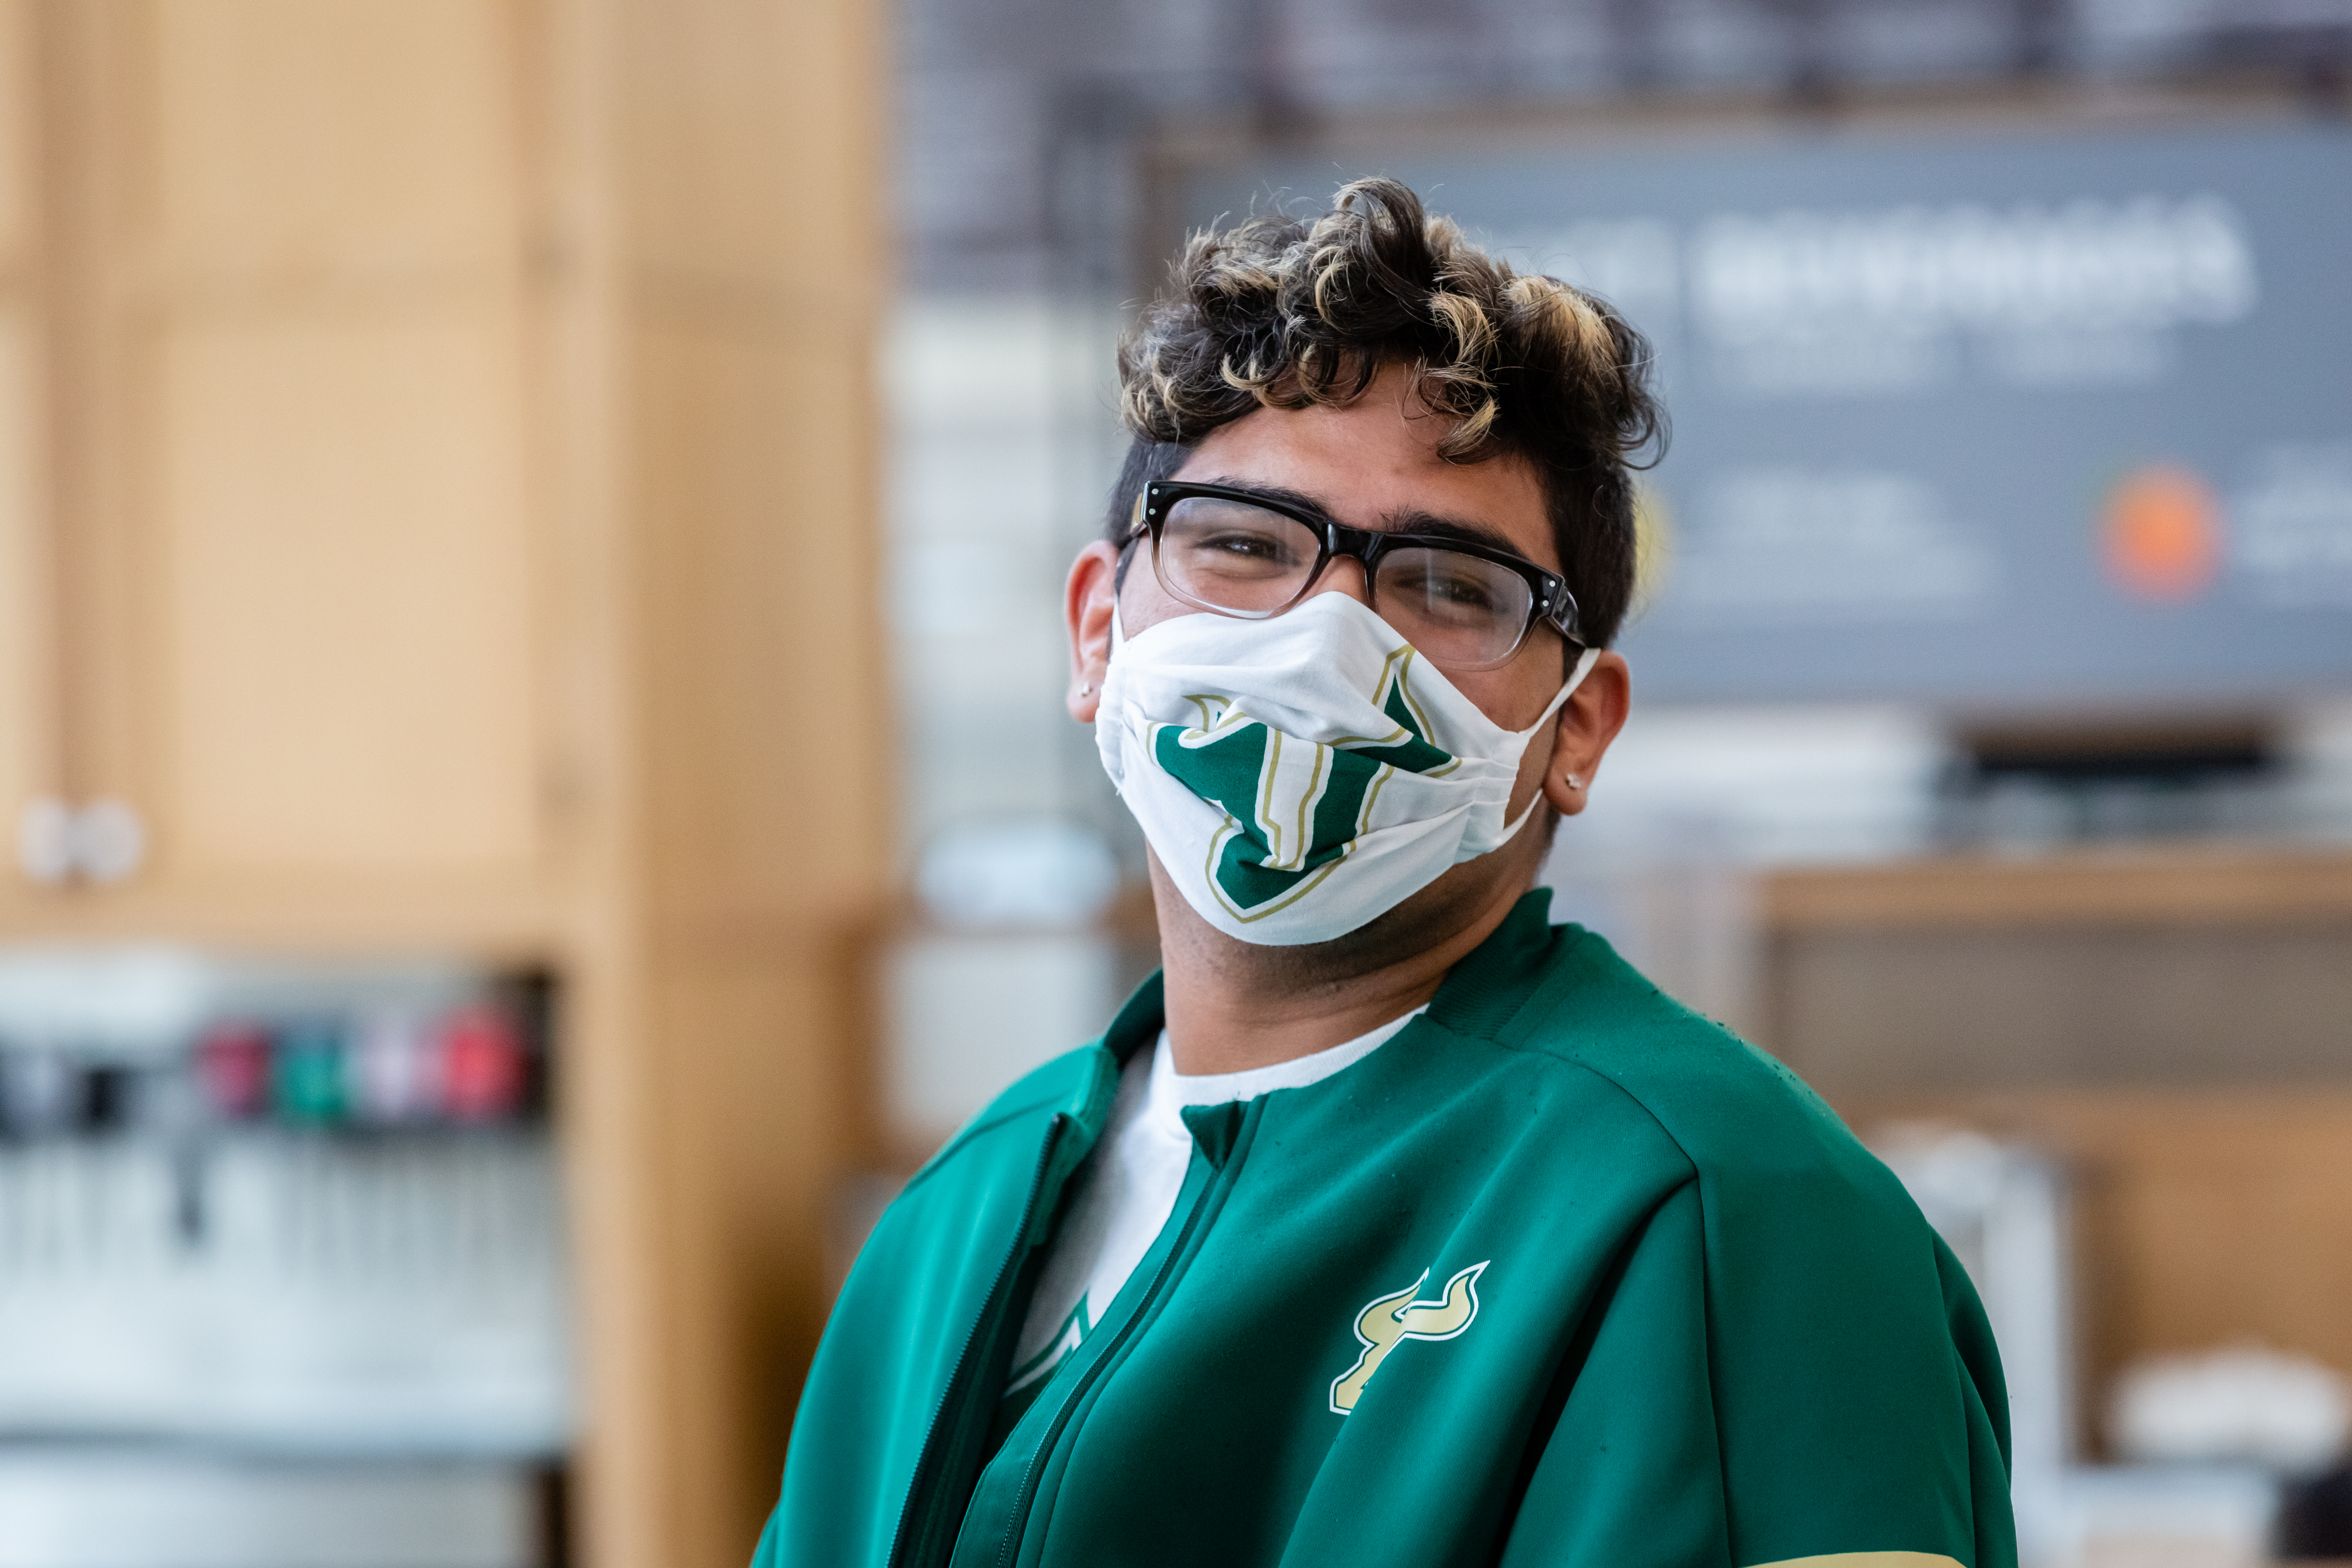 Student in glasses smiling with Bull U mask on